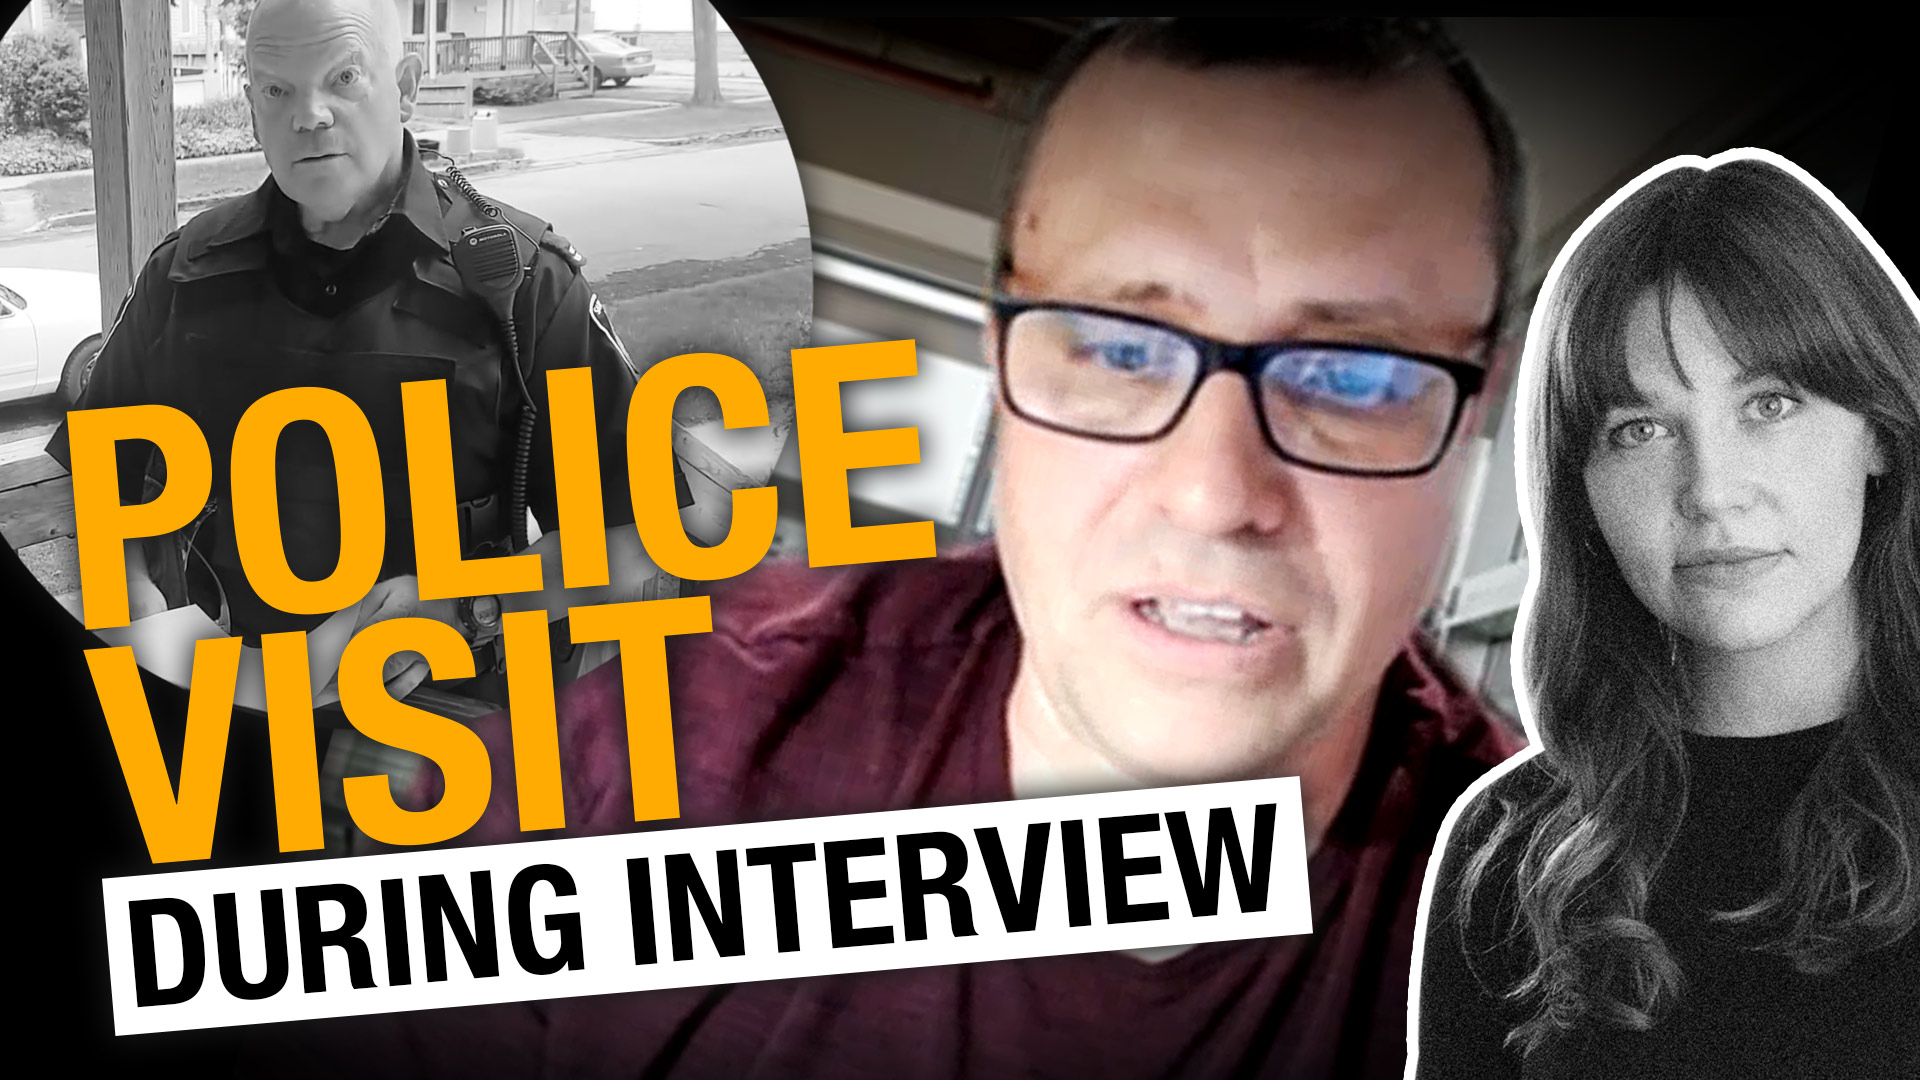 Cop shows up during interview! Indie journo in hot water after covering anti-lockdown rally